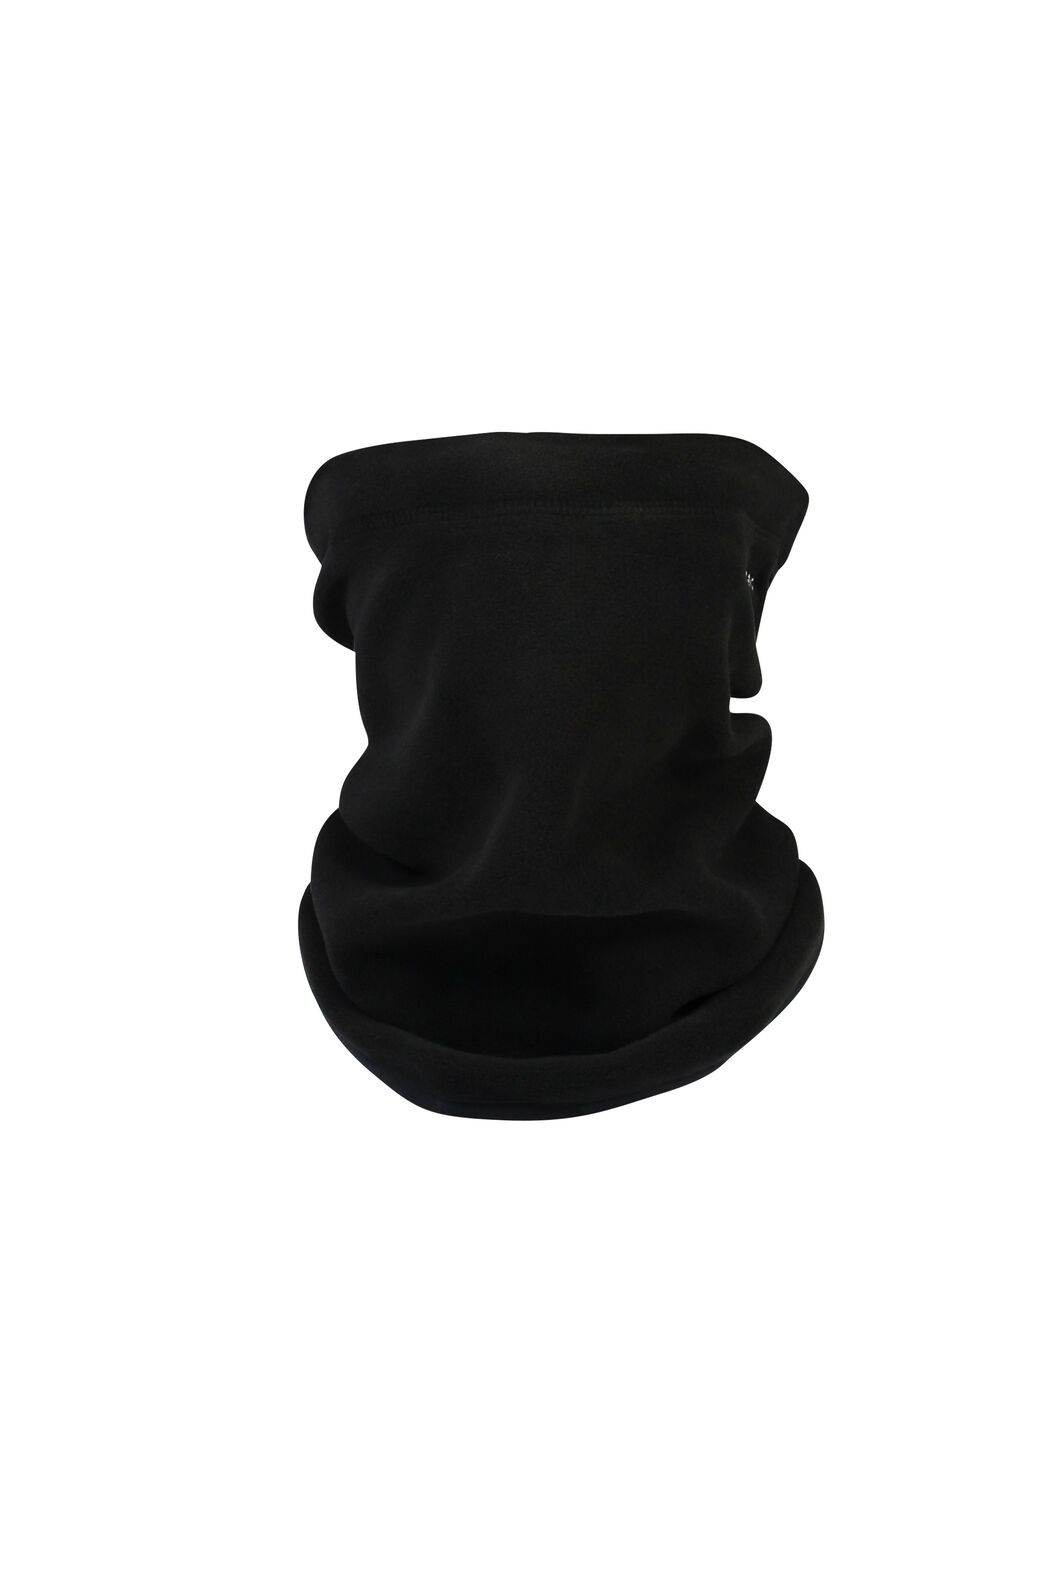 Kaka Polartec® Micro Fleece™ Neck Gaiter, Black, hi-res